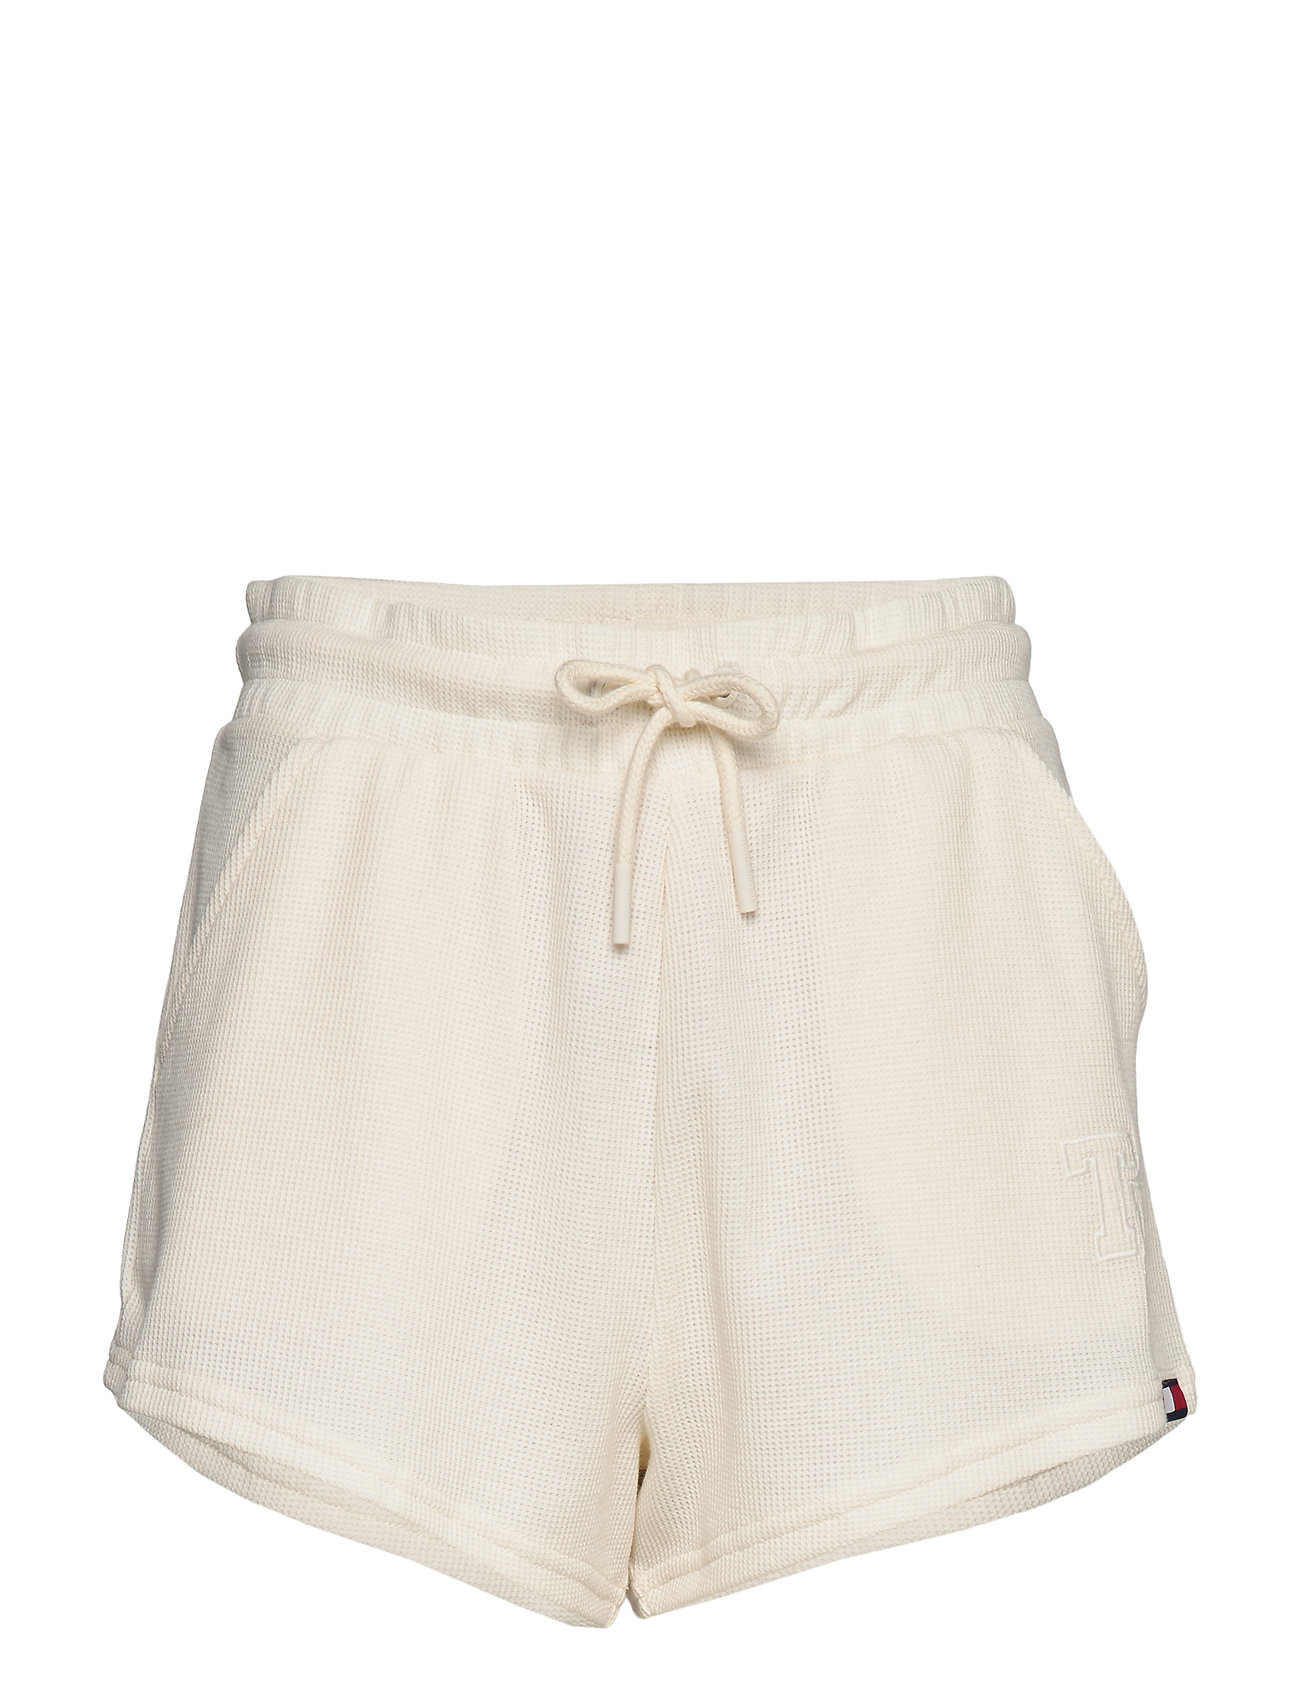 Tommy Hilfiger SHORT - ANTIQUE WHITE